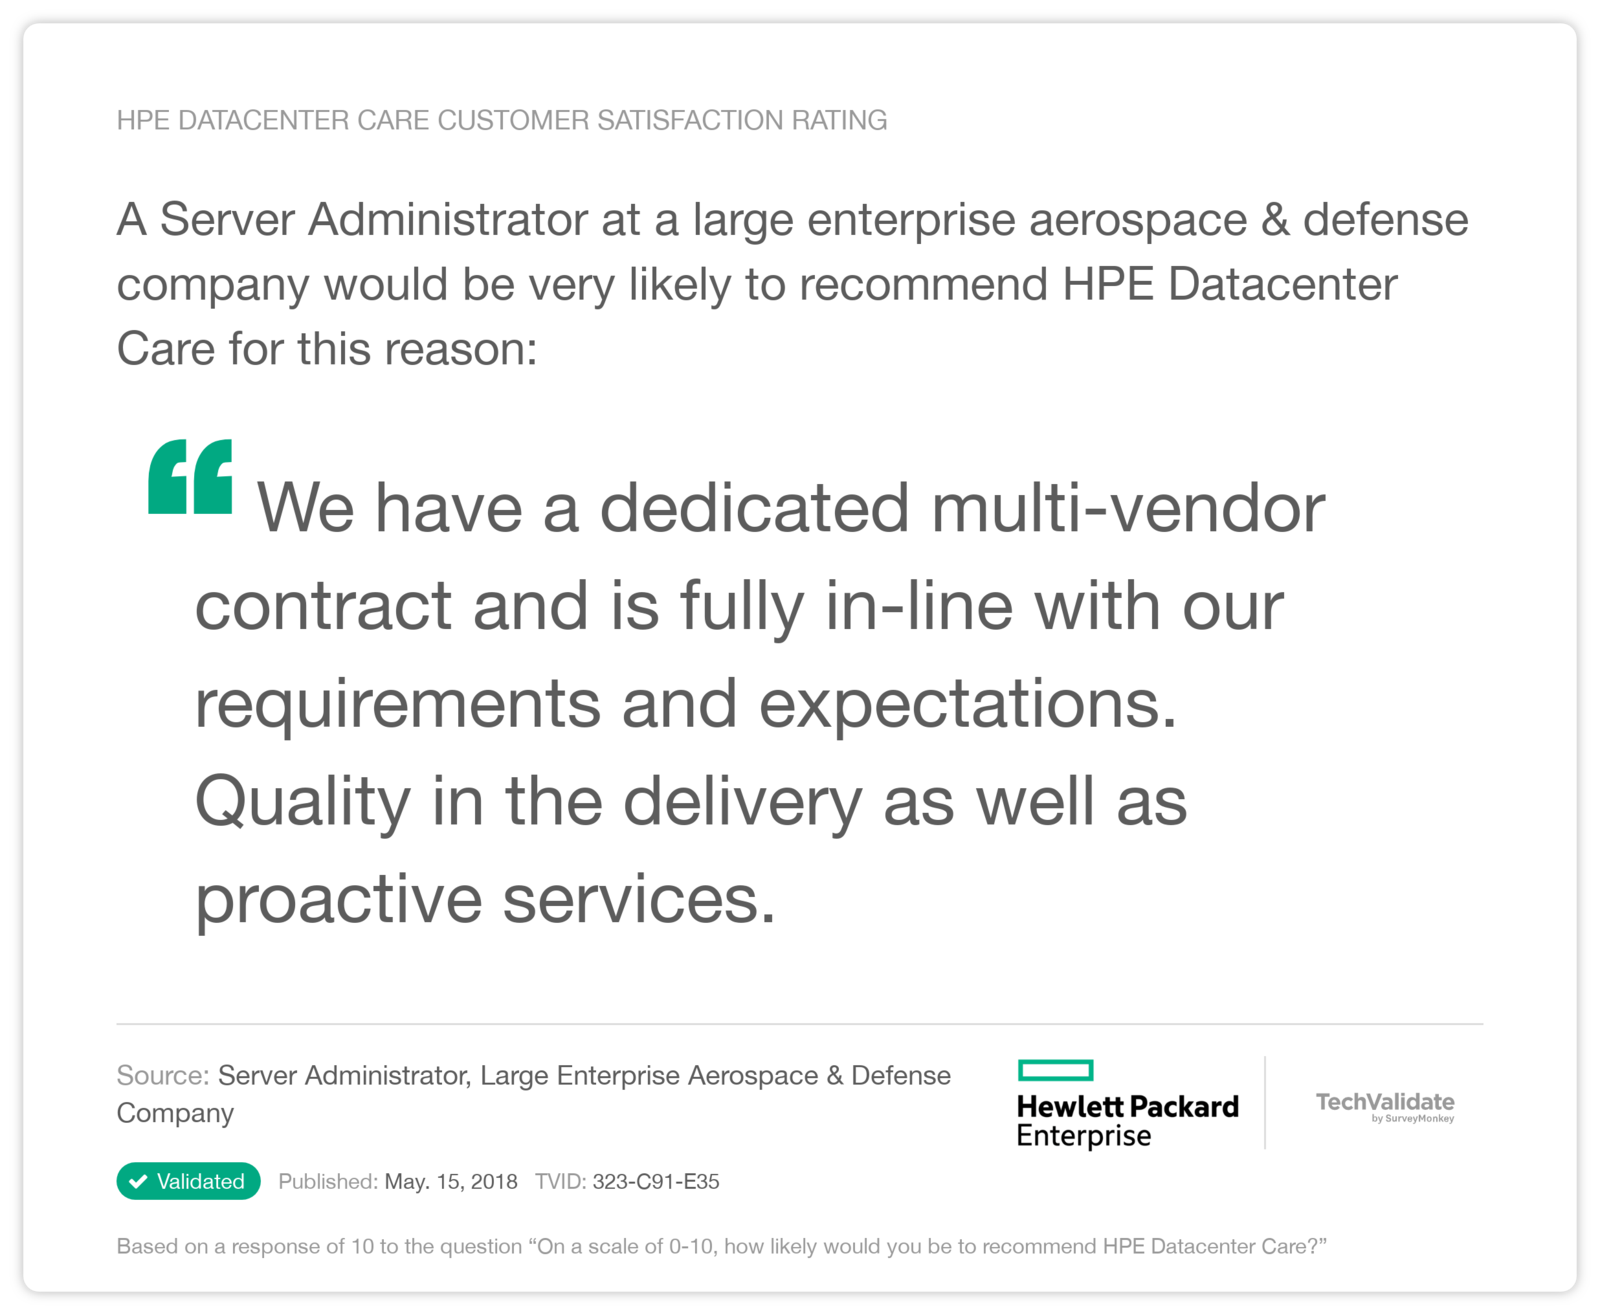 HPE Datacenter Care Customer Satisfaction Rating